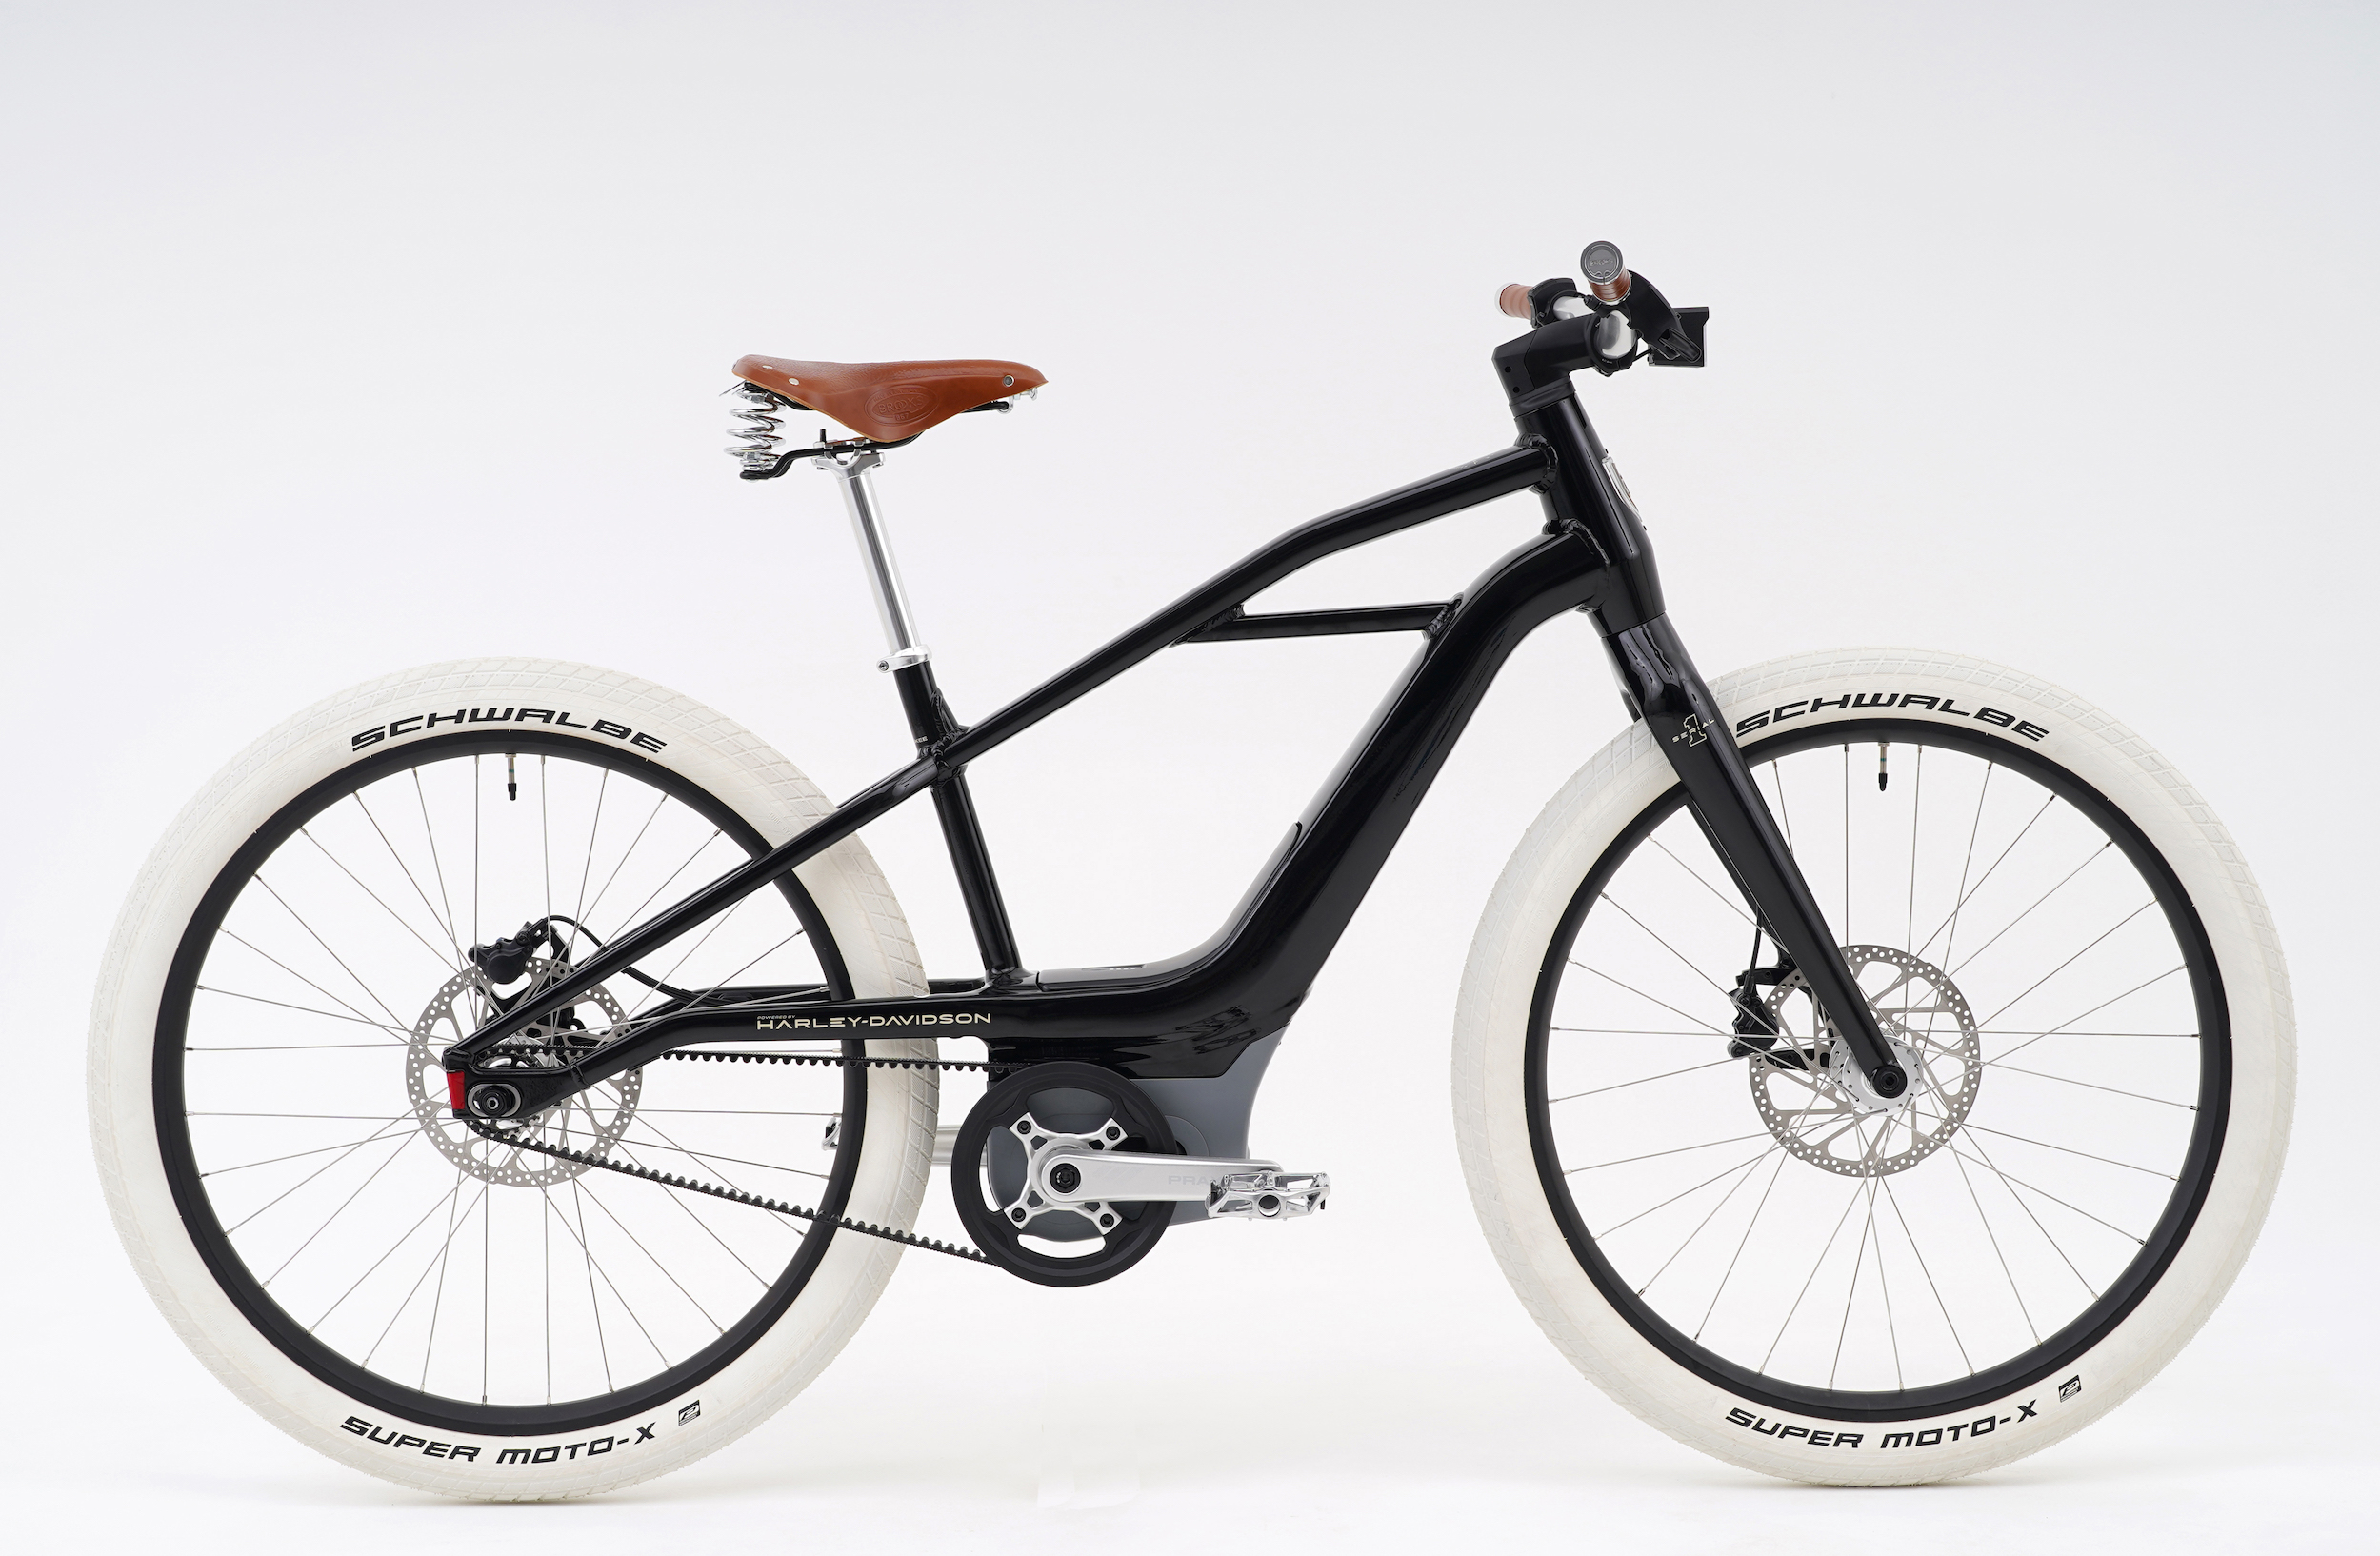 Serial 1 S1 Mosh/Tribute e-bike with white tires and glossy black frame